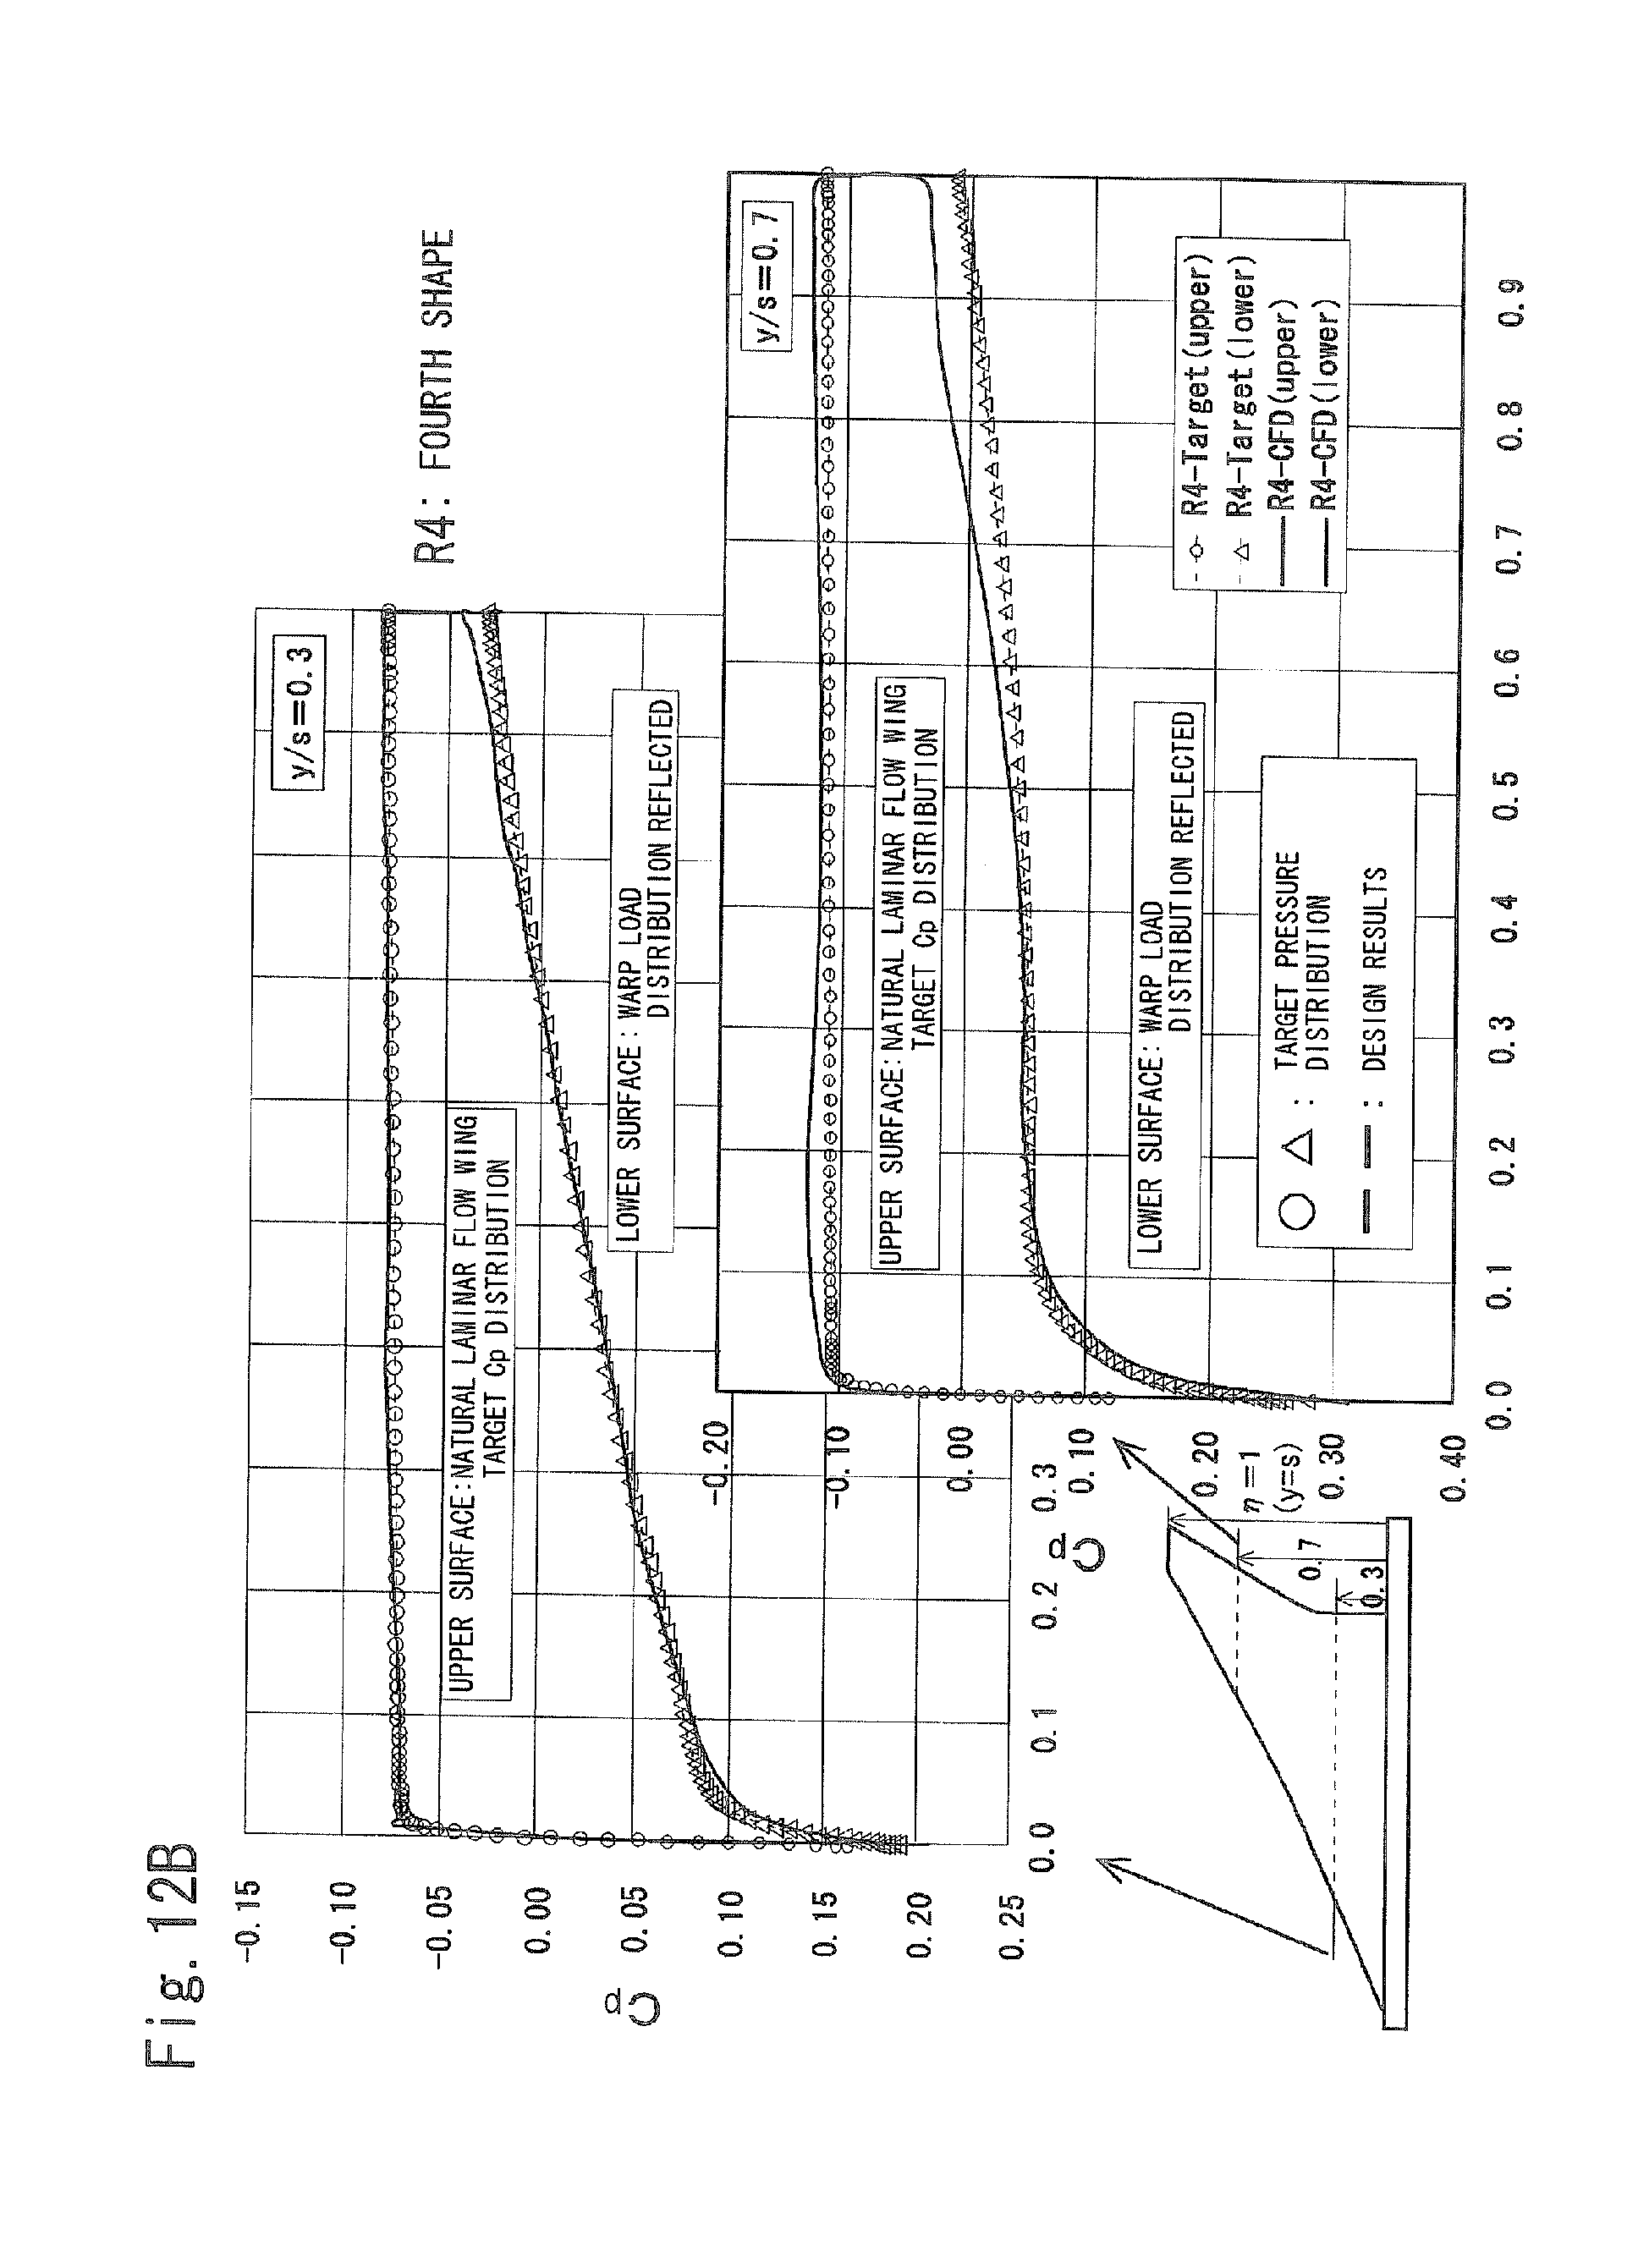 Patent EP2466288A2 Method of designing natural laminar flow wing for reynolds numbers